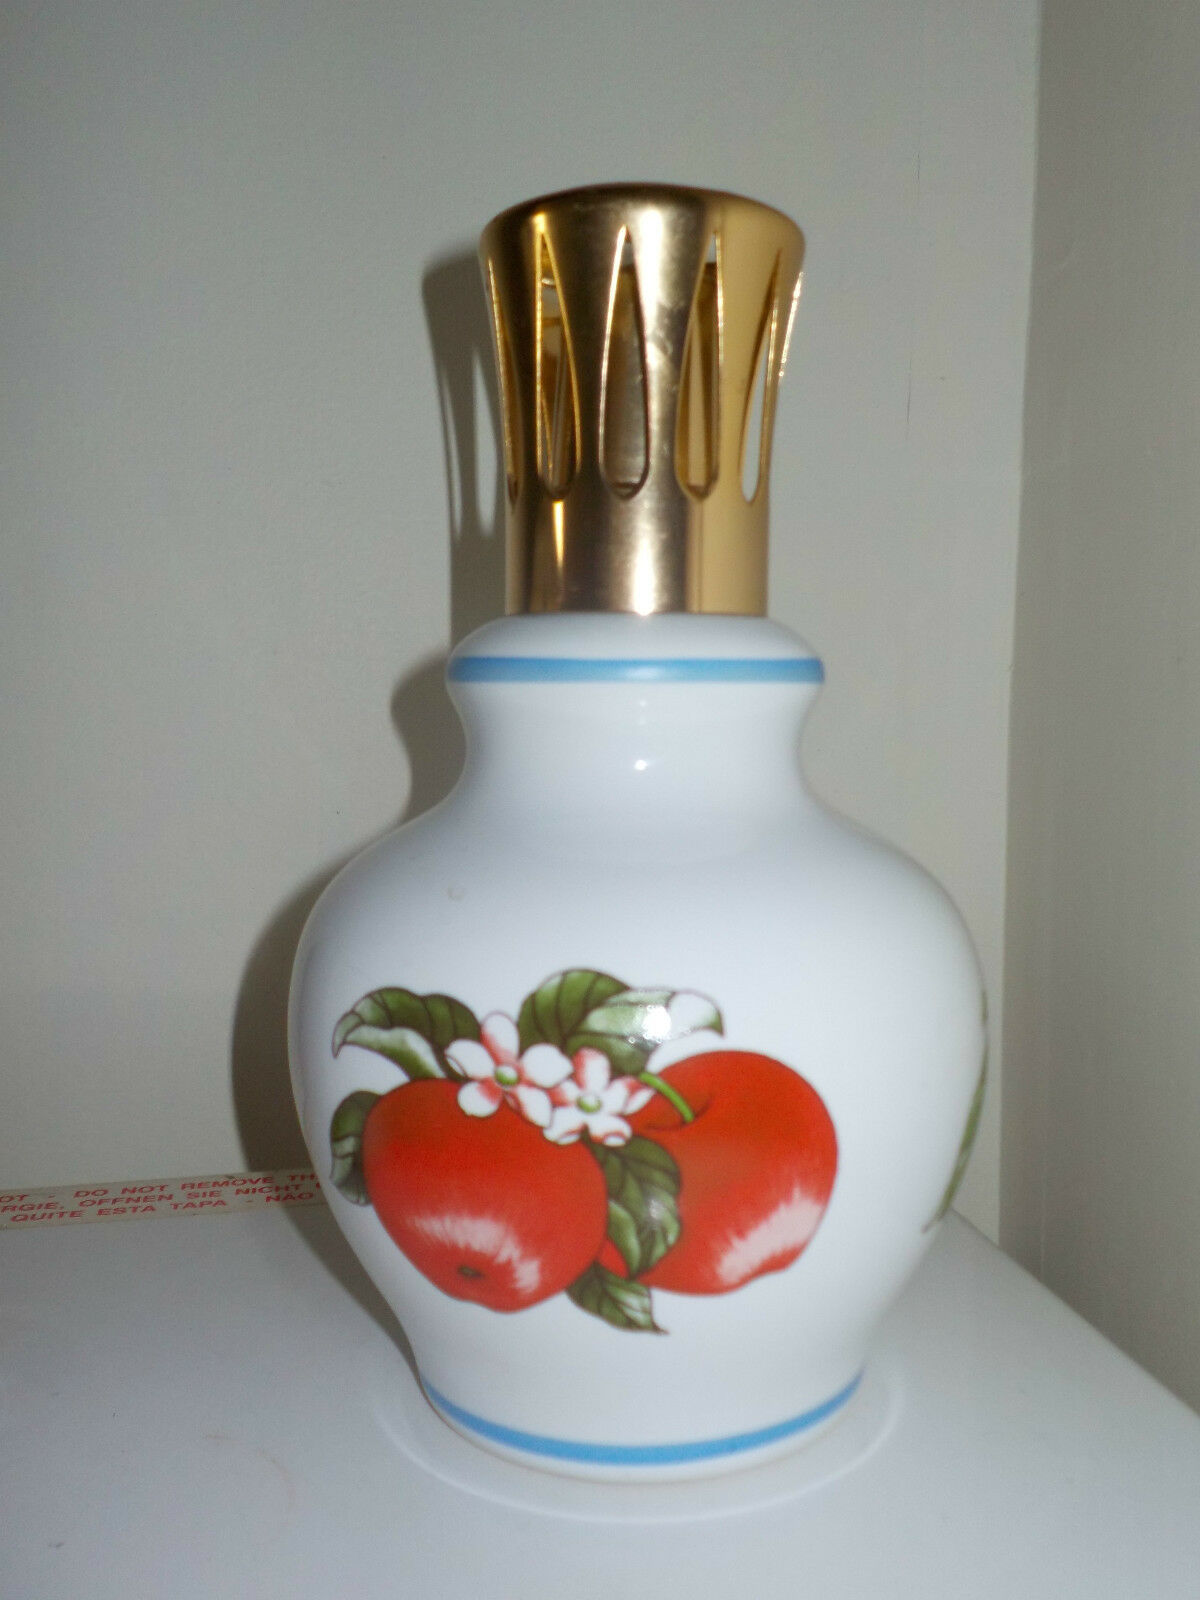 Lampe Berger In Usa Lampe Berger Decor Fruits Tbe Eur 13 50 Picclick Fr